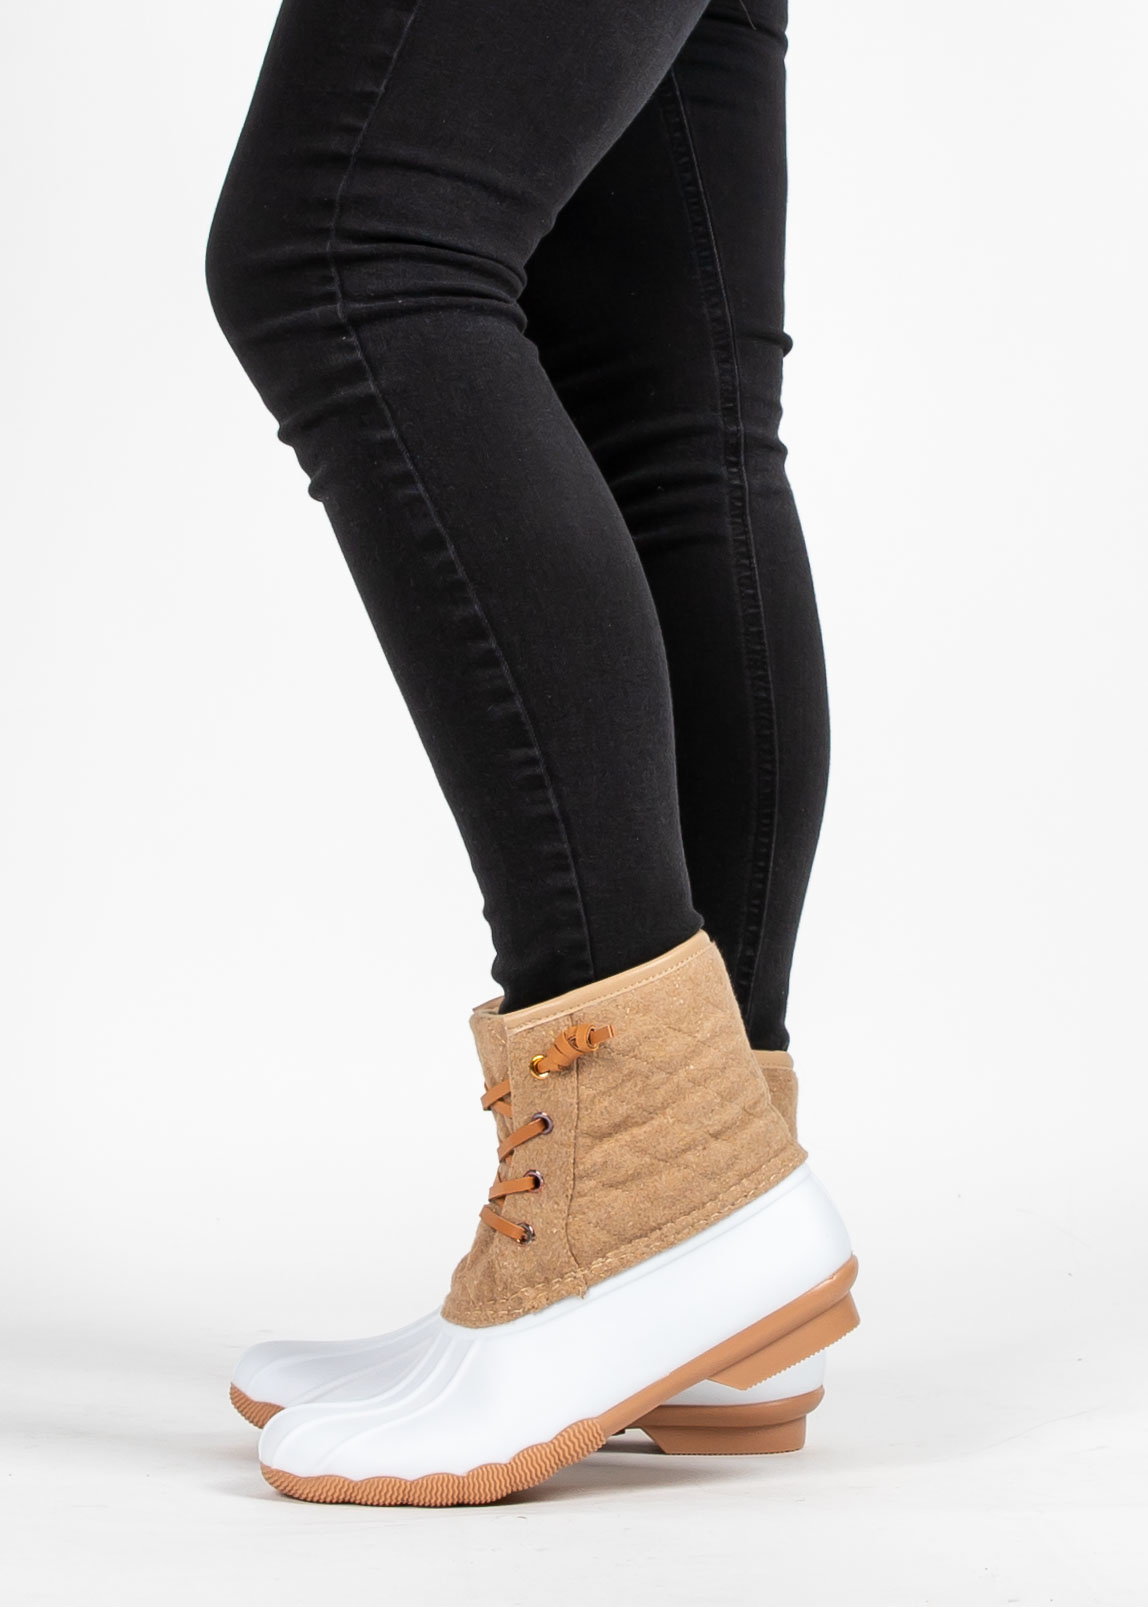 WELCOME THE WINTER DUCK BOOTS